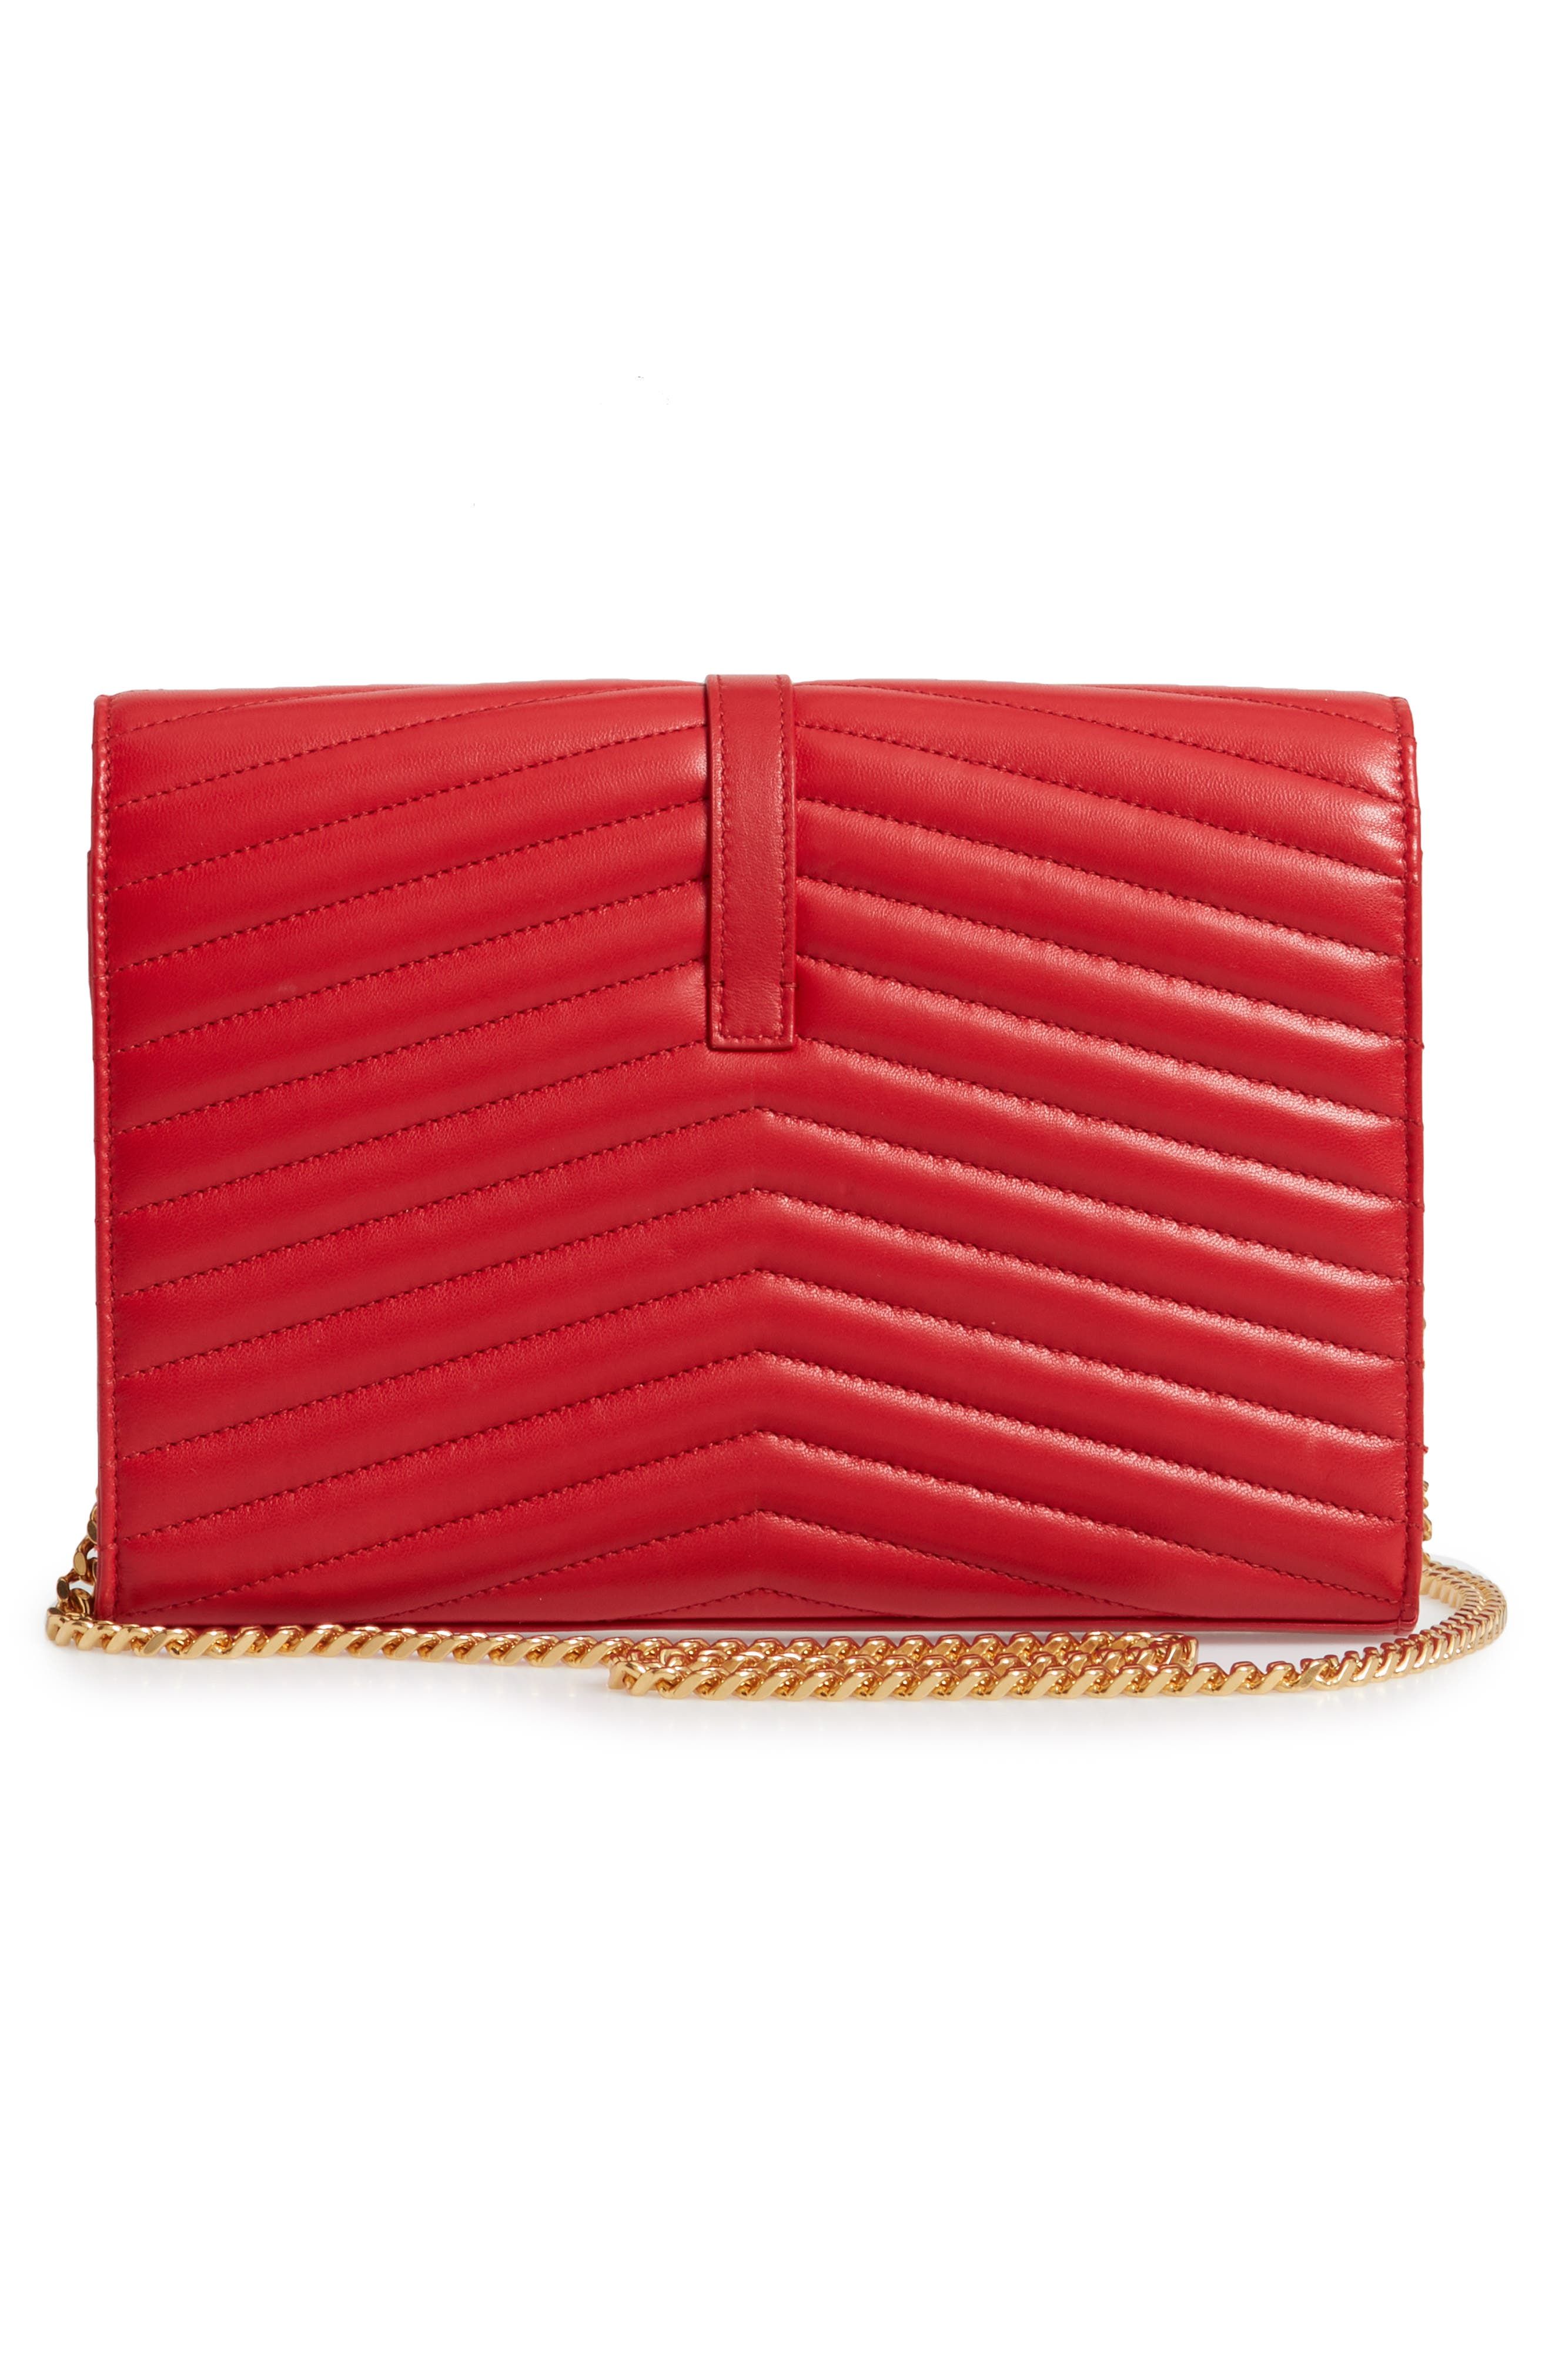 SAINT LAURENT, Sulpice Leather Crossbody Wallet, Alternate thumbnail 3, color, BANDANA RED